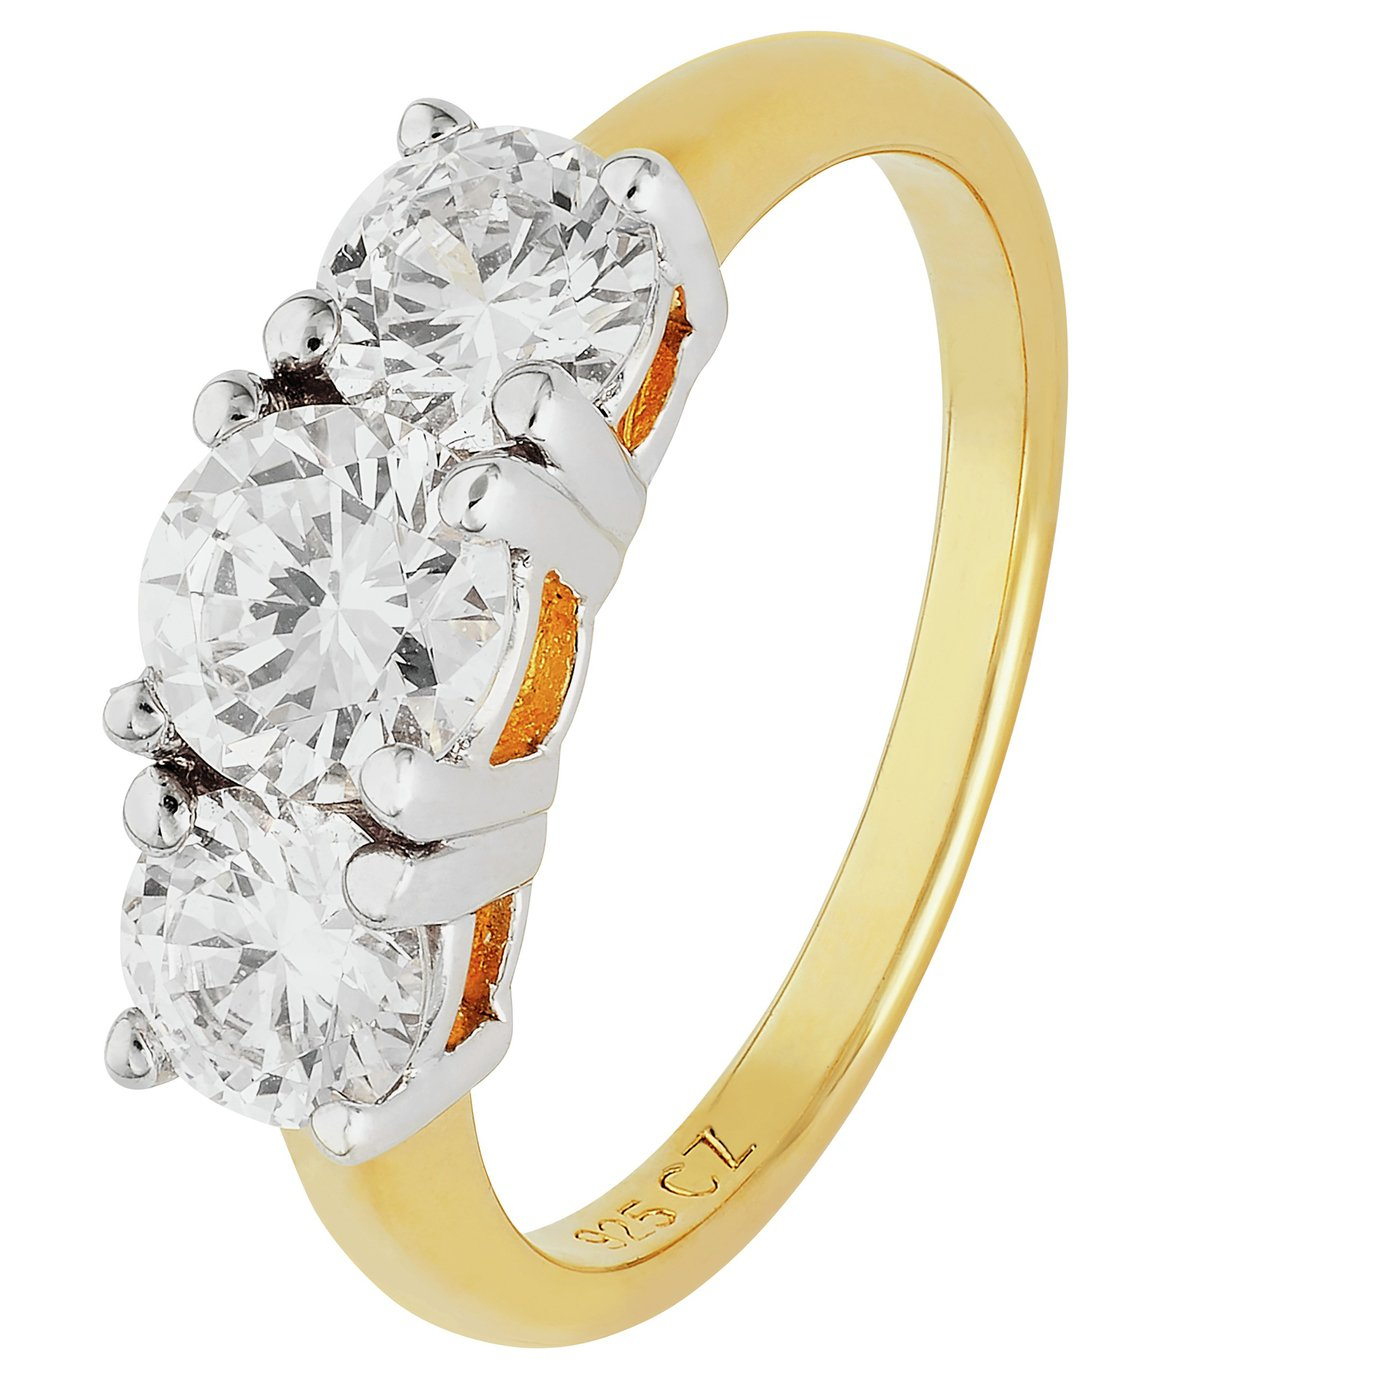 18 Carat Gold - Plated Silver 15 Carat Look 3 Stone Ring